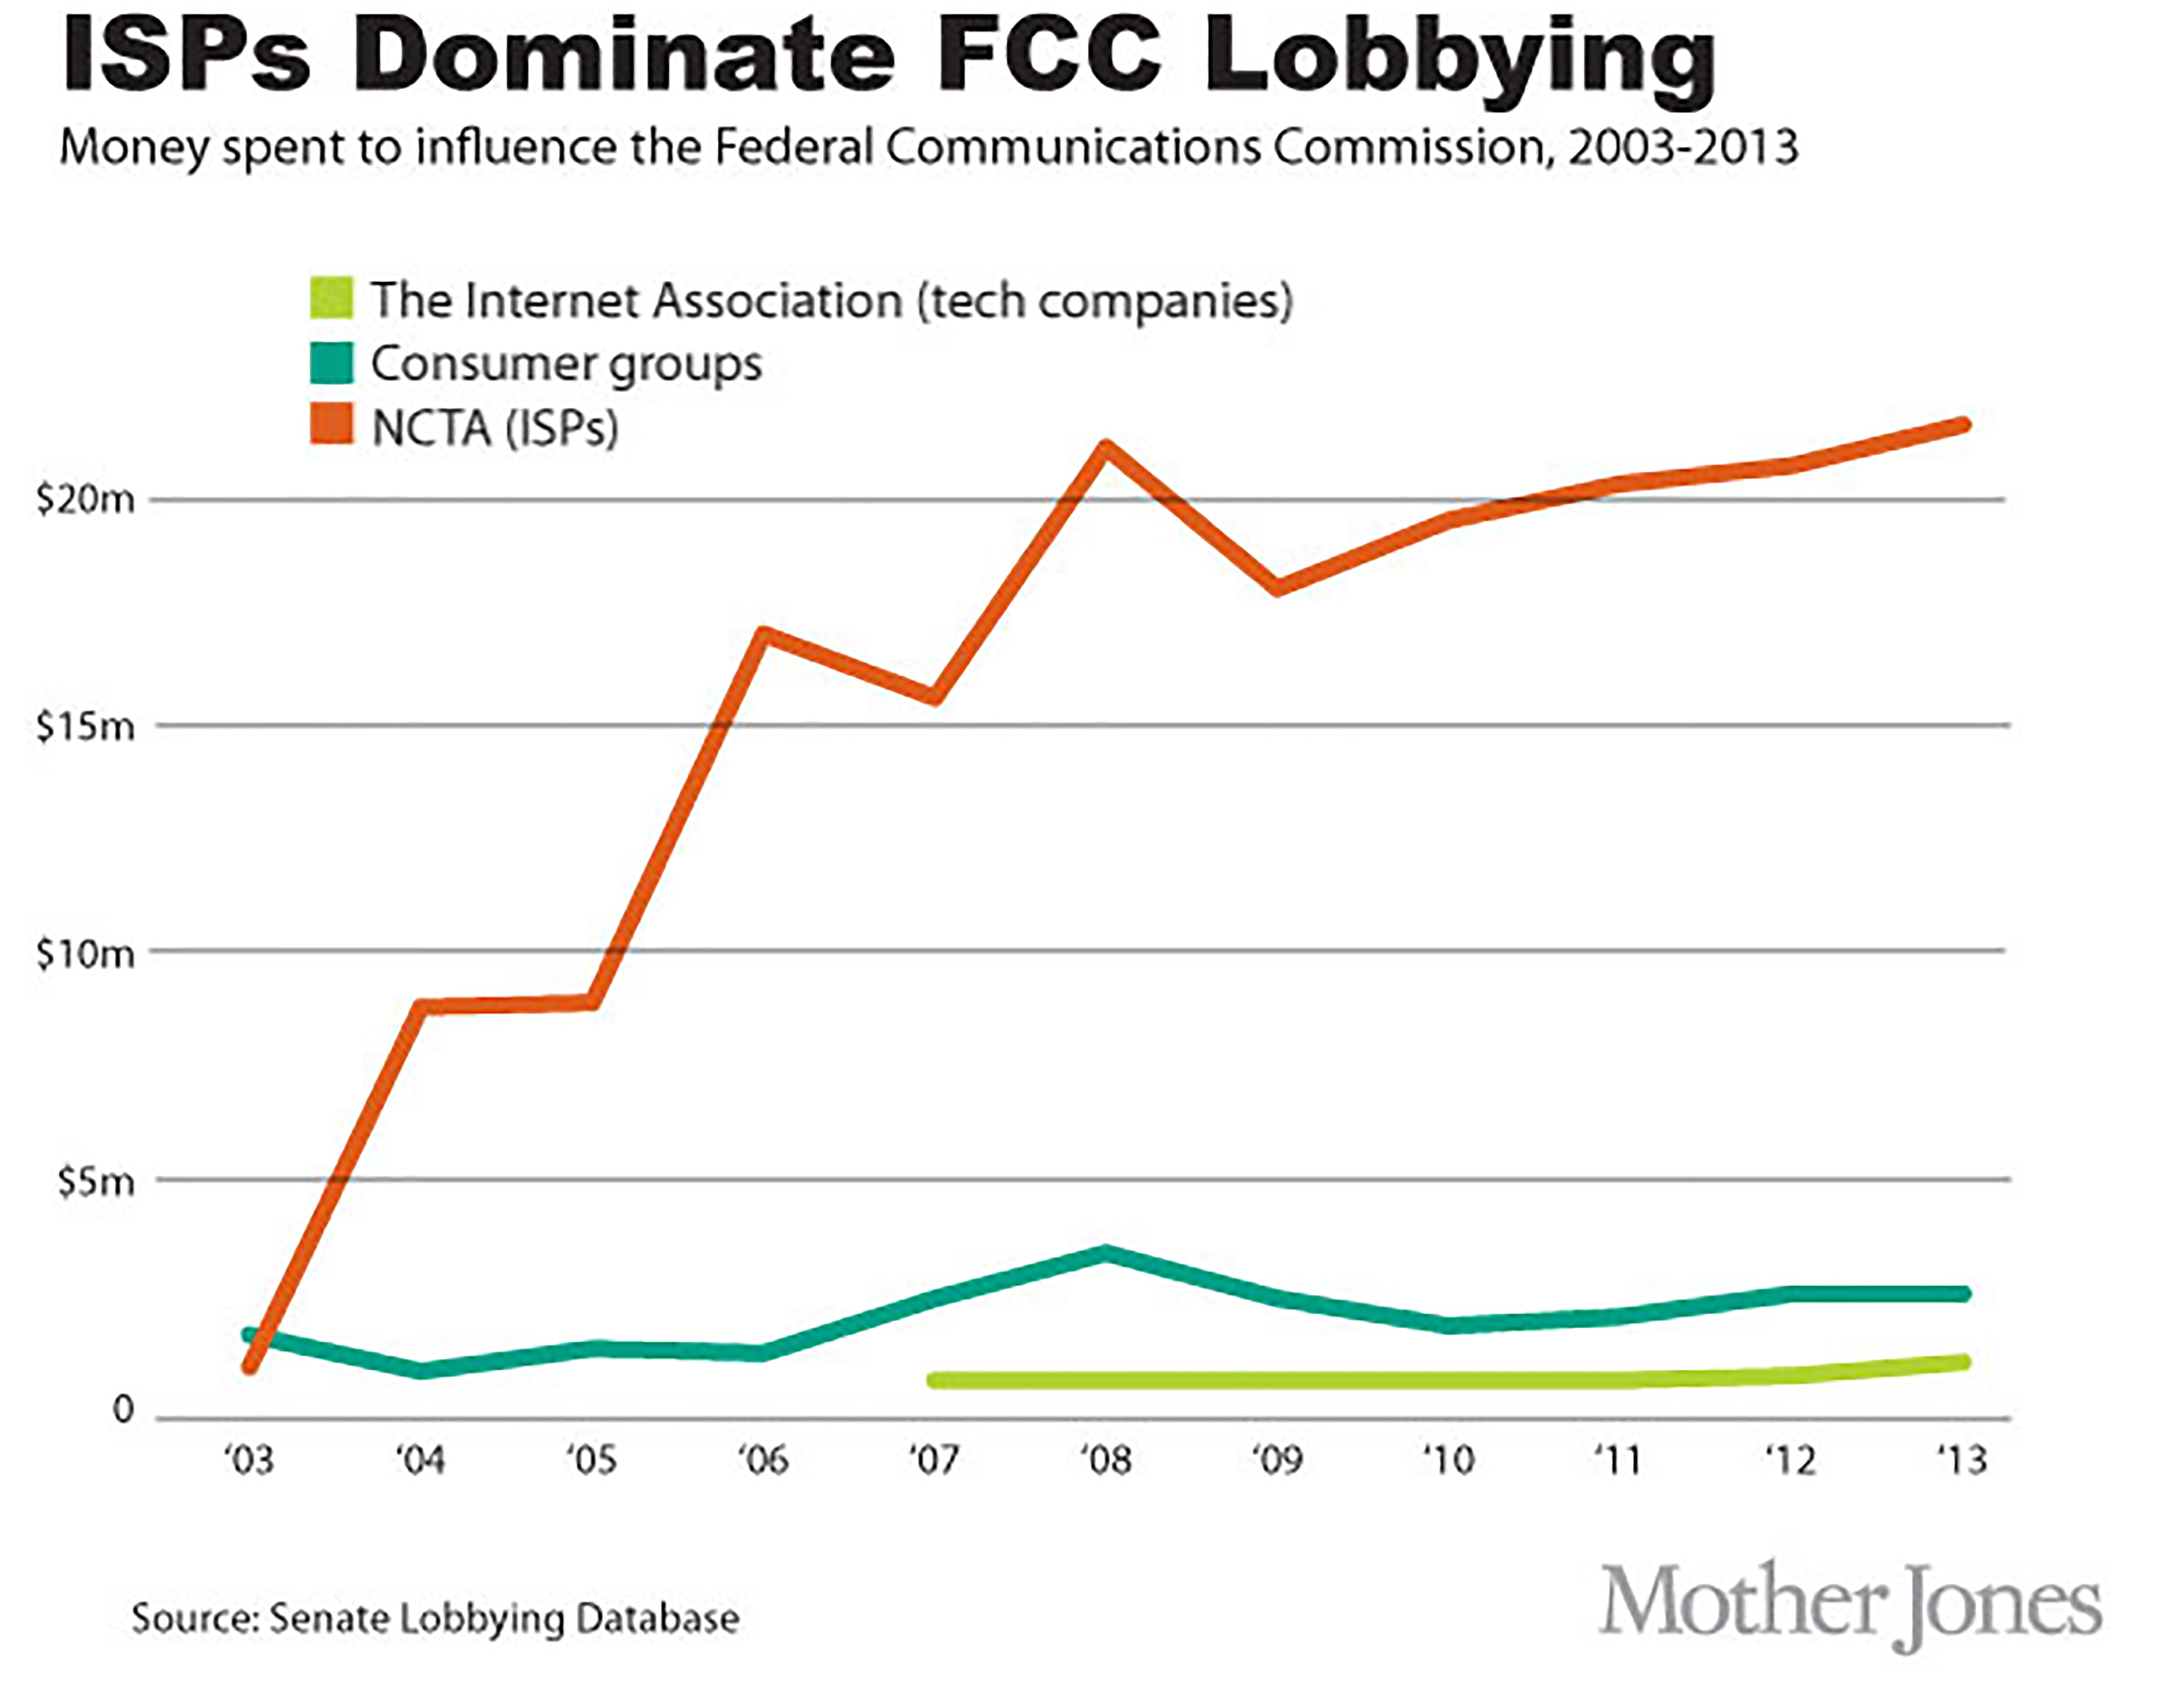 A graphy showing the money spent to influence the Federal Communication Commission 2003-2013